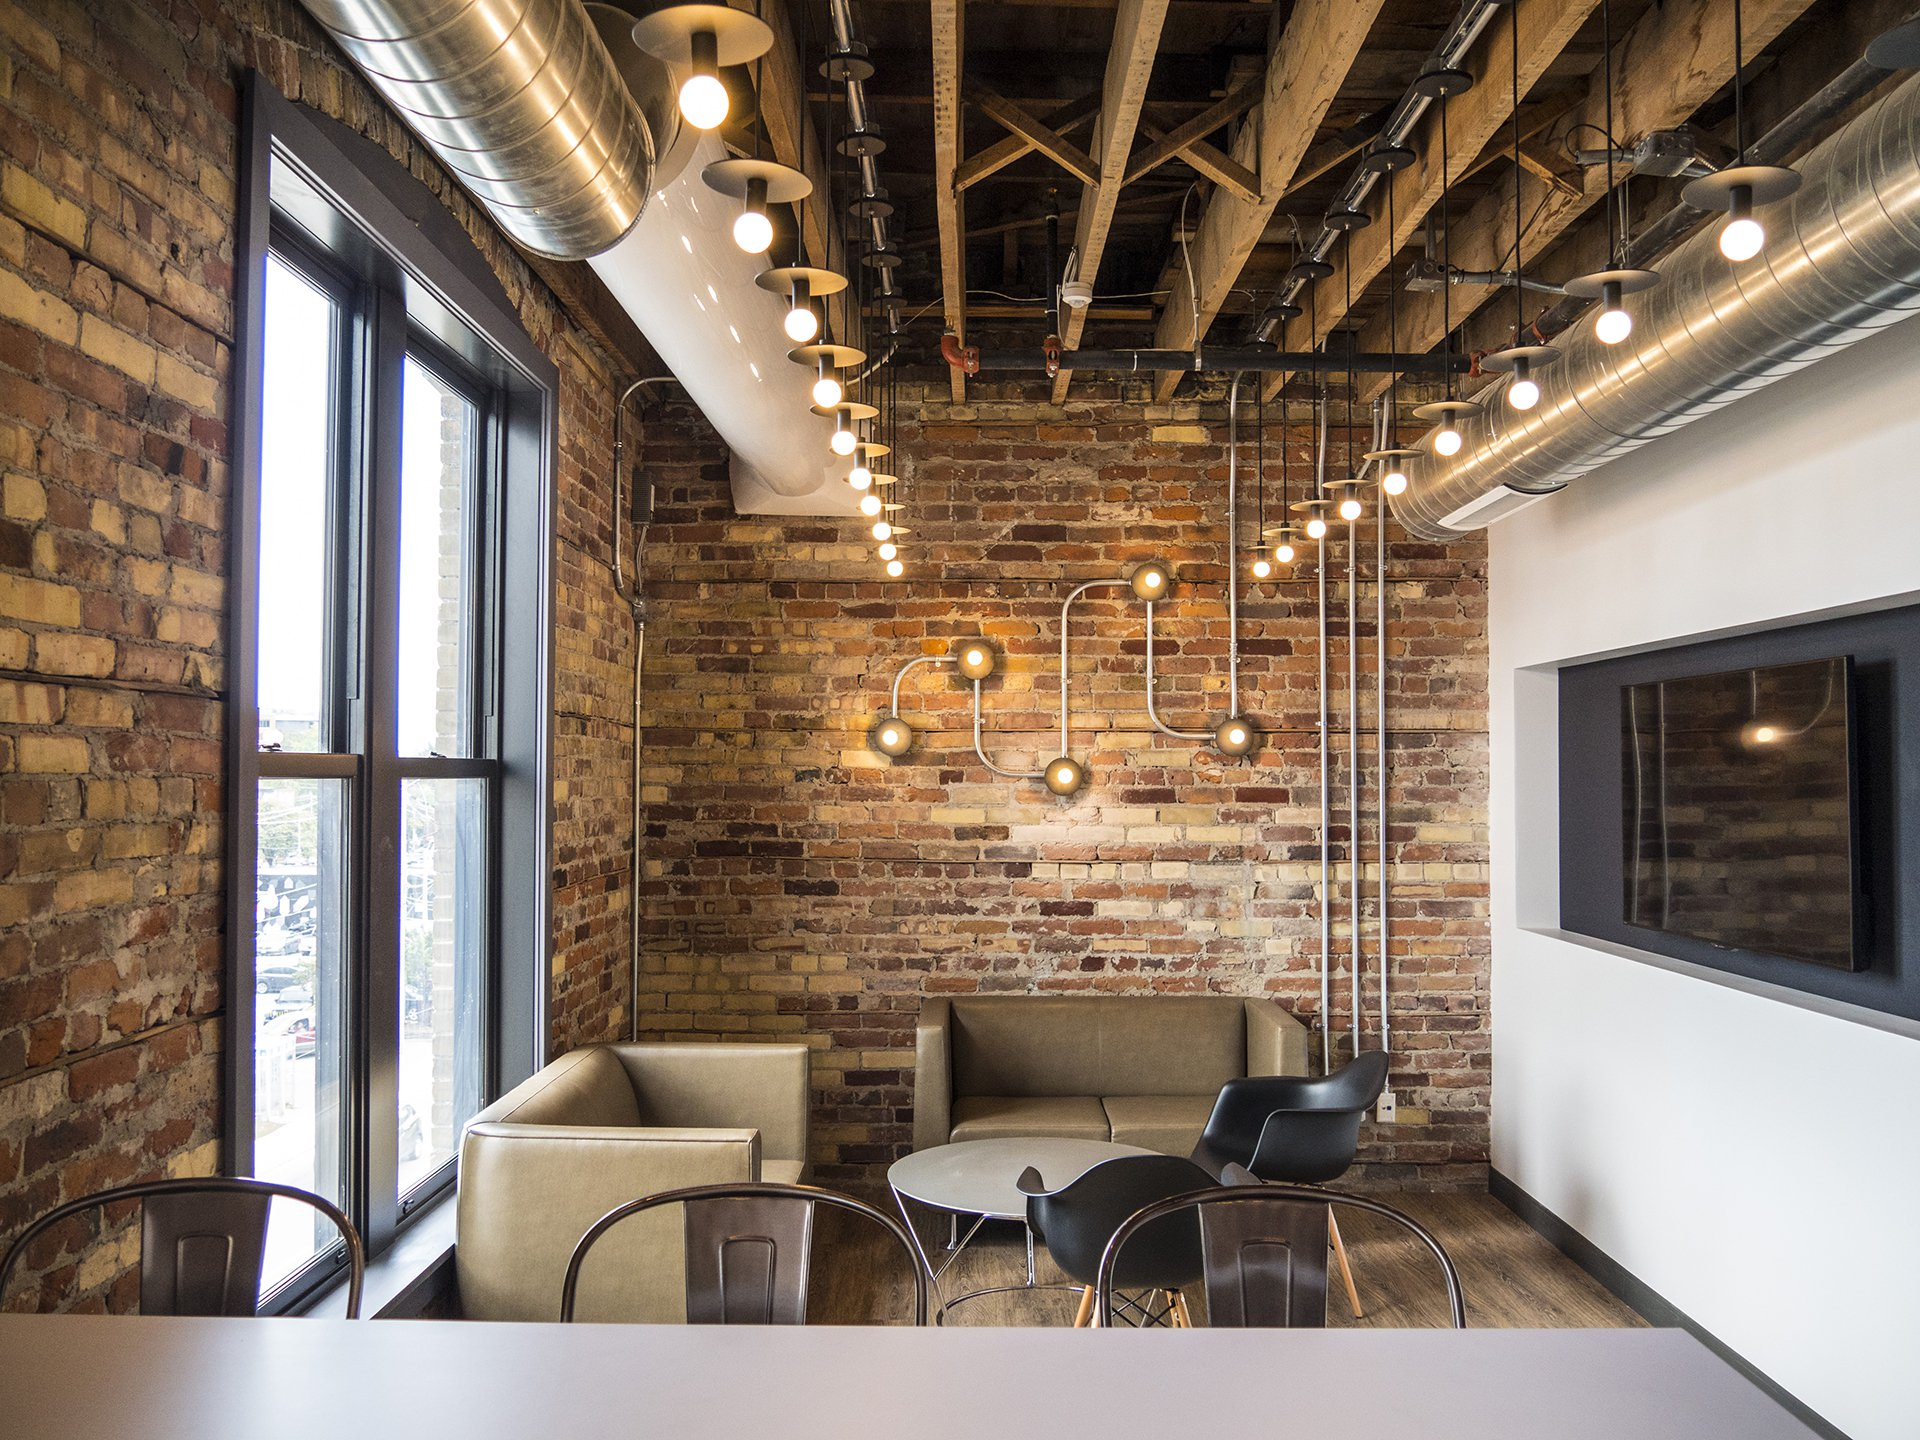 The kitchens in the WE Global Learning Center feature exposed brick and floor-to-ceiling windows